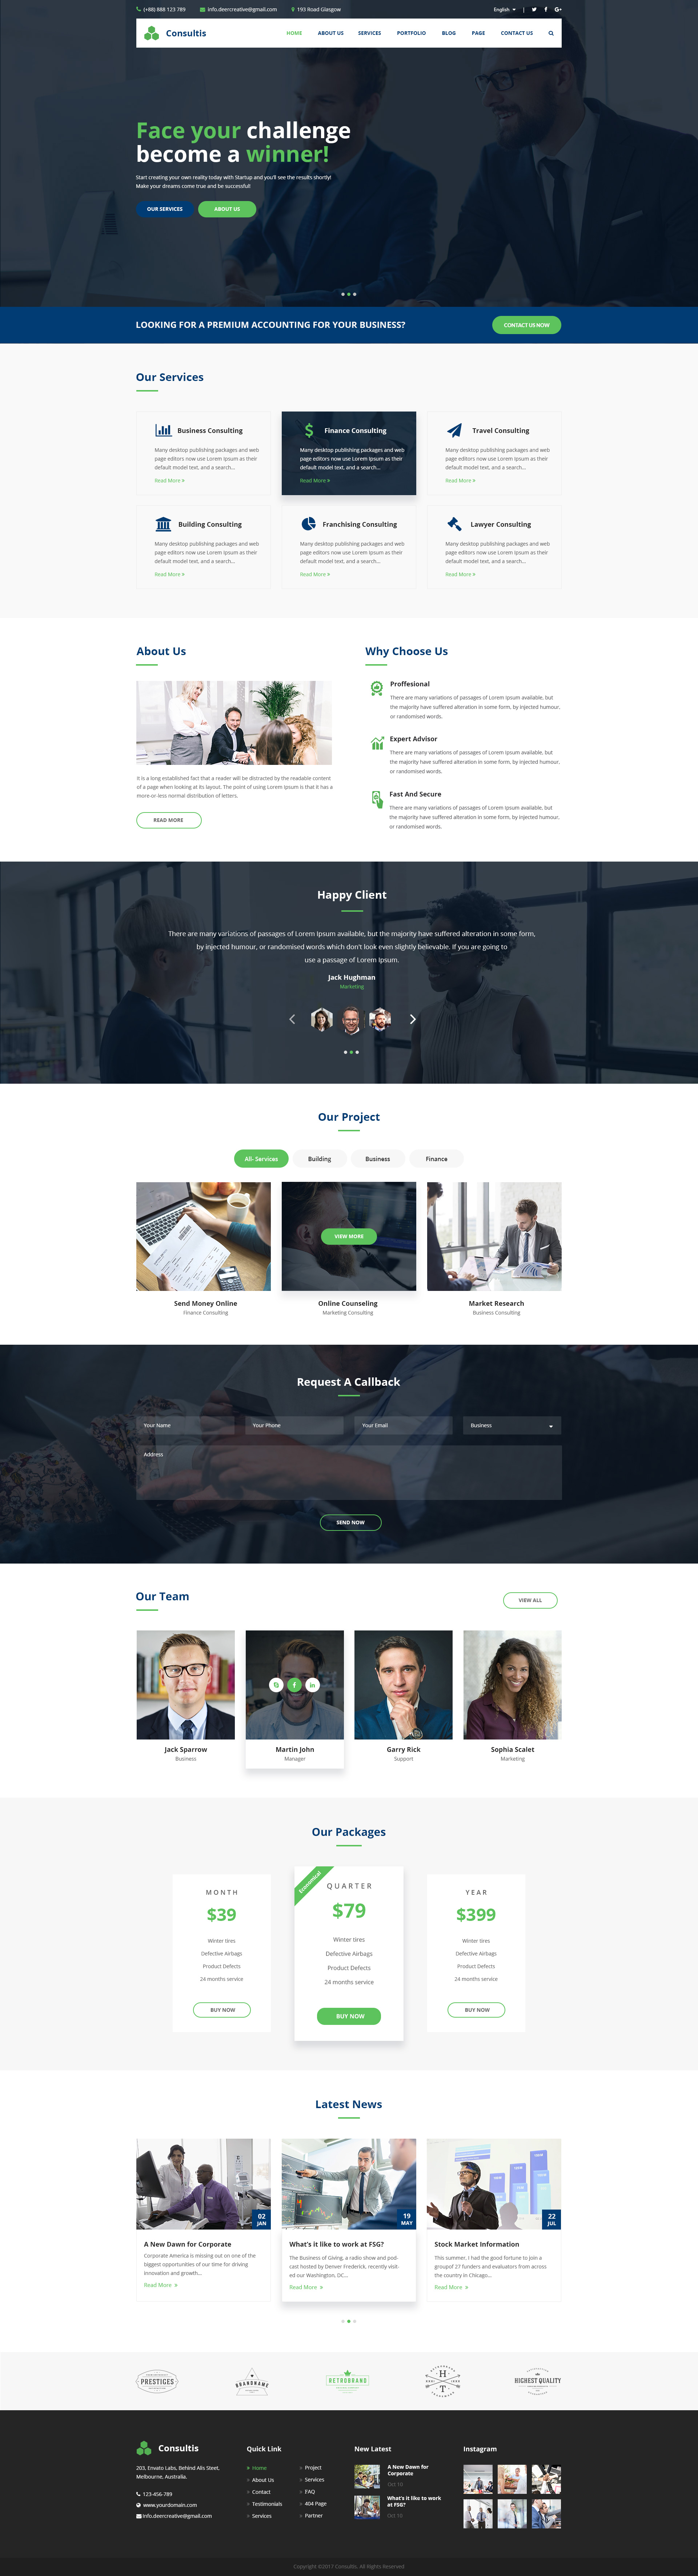 Consultis | Multipurpose Consulting PSD Templates by Leonard_Design